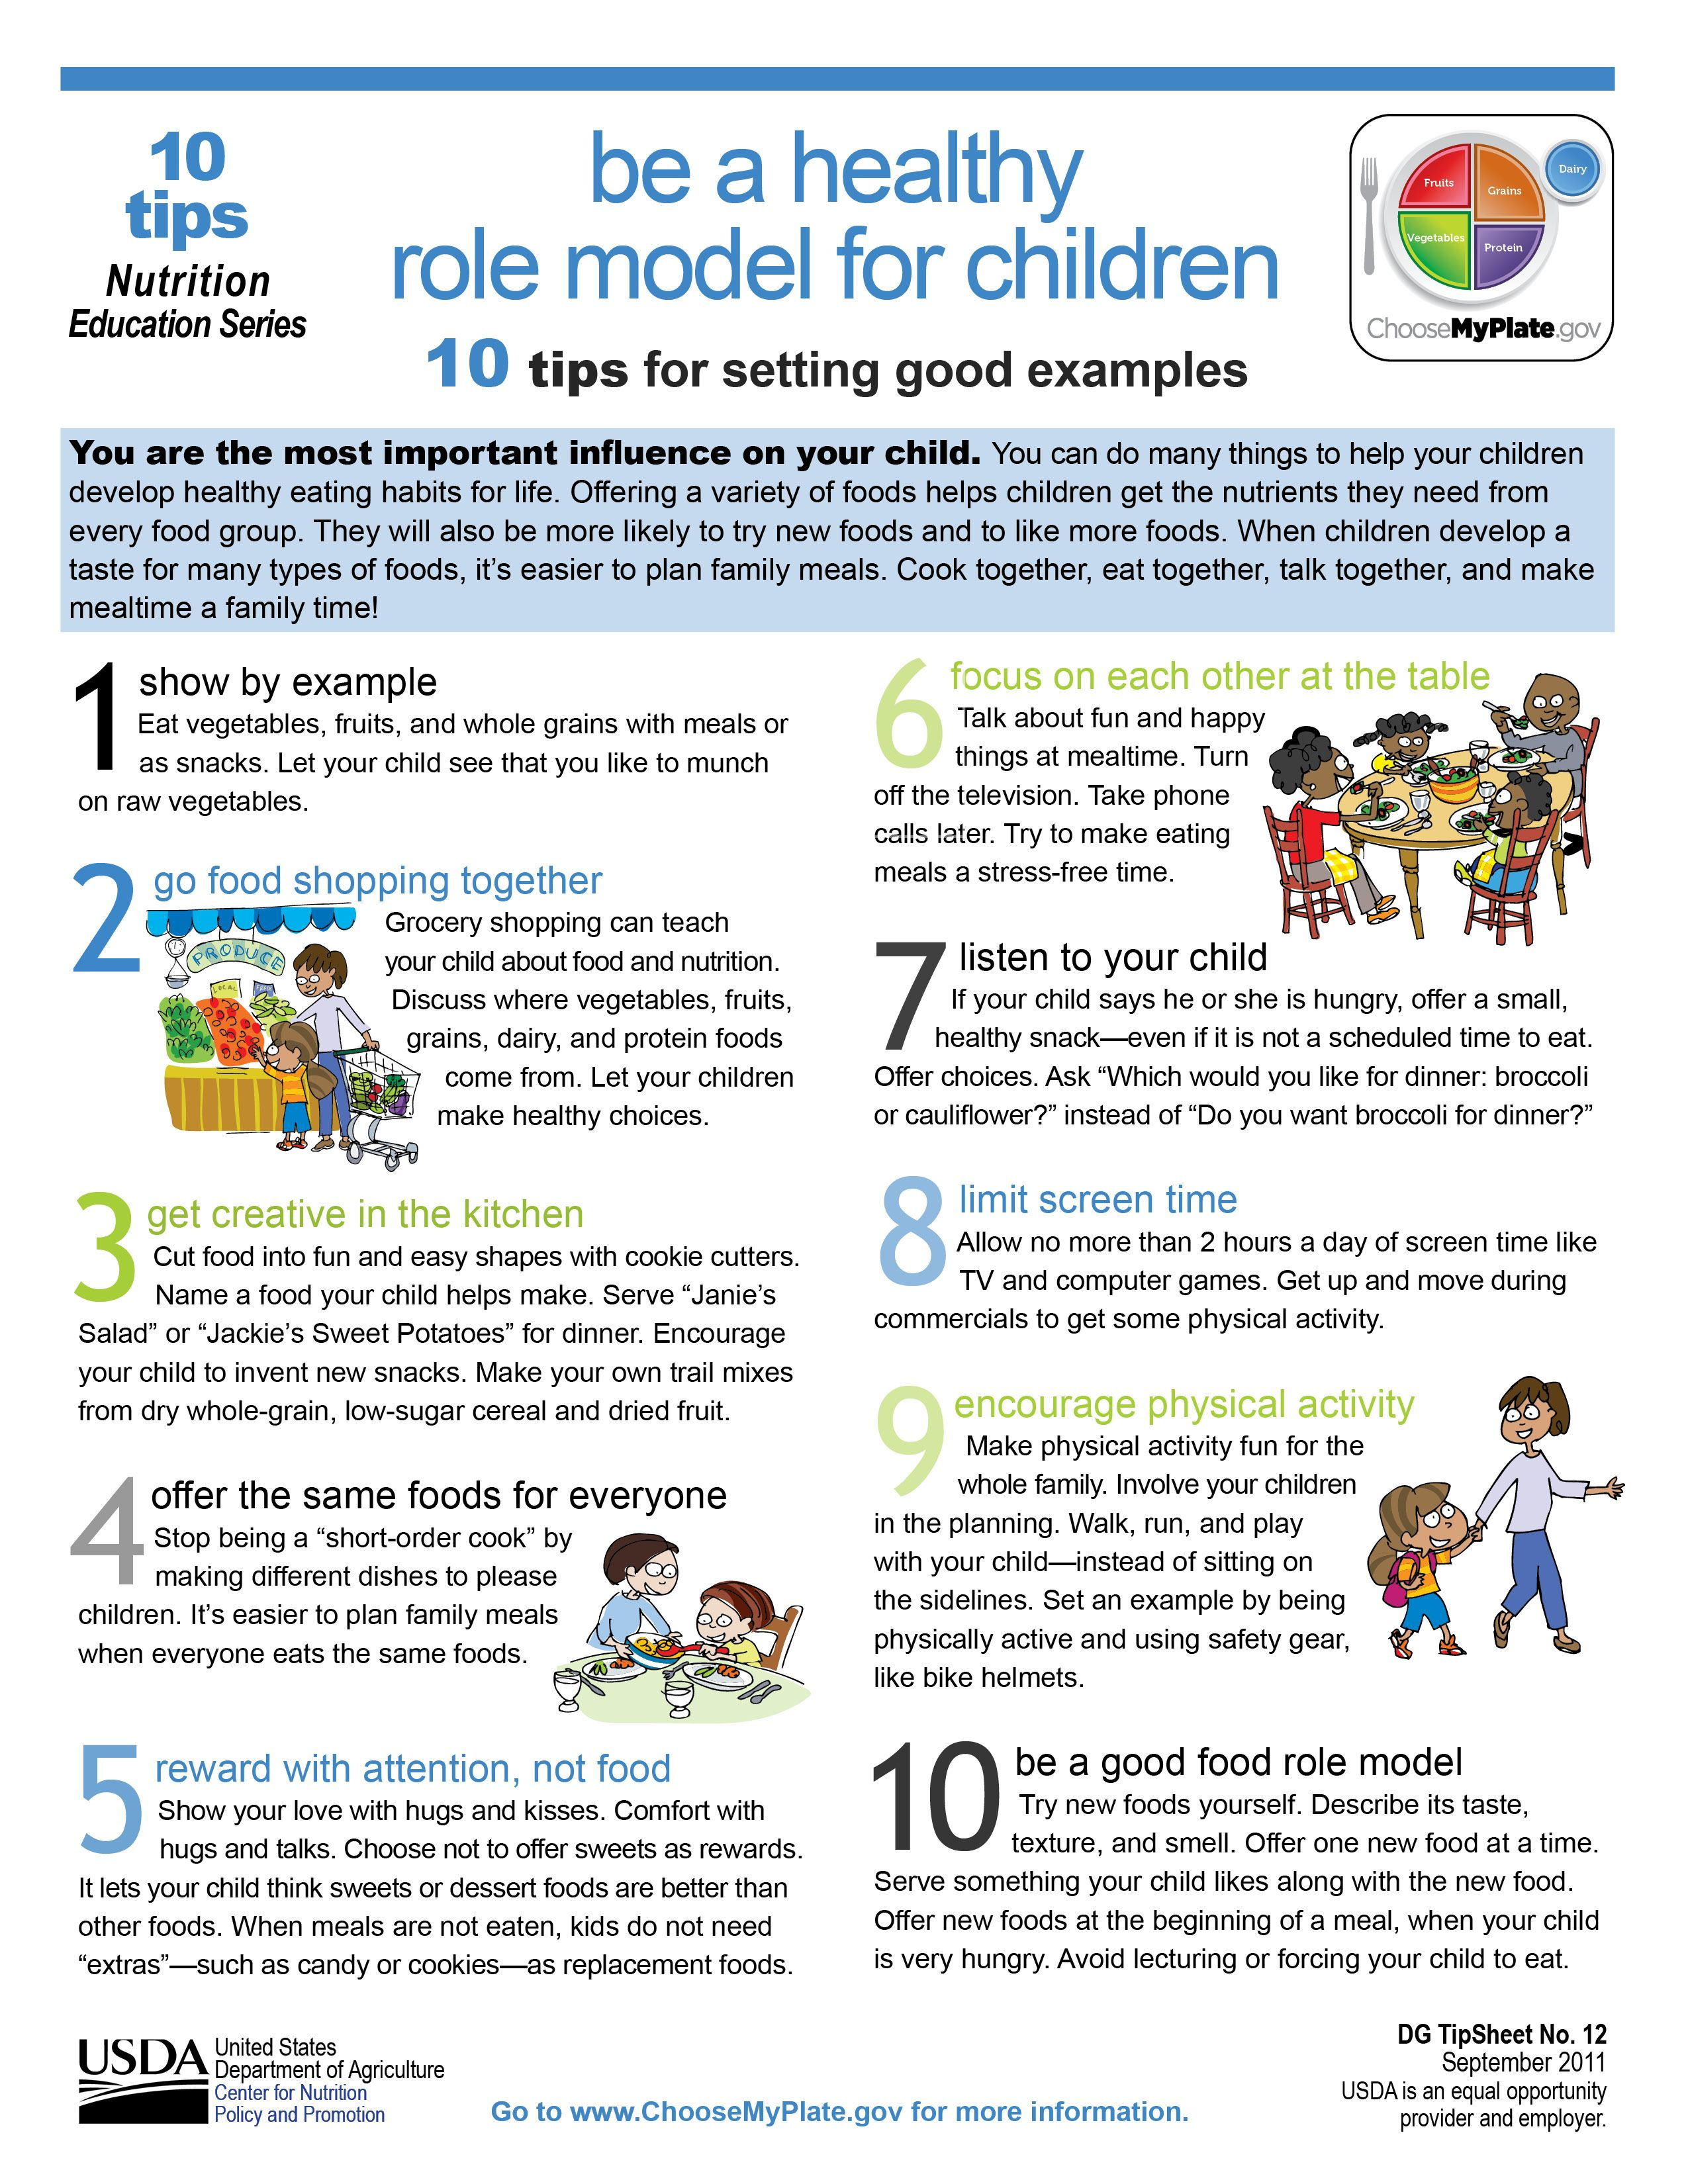 10 Ways You Can Be A Healthy Role Model For Children